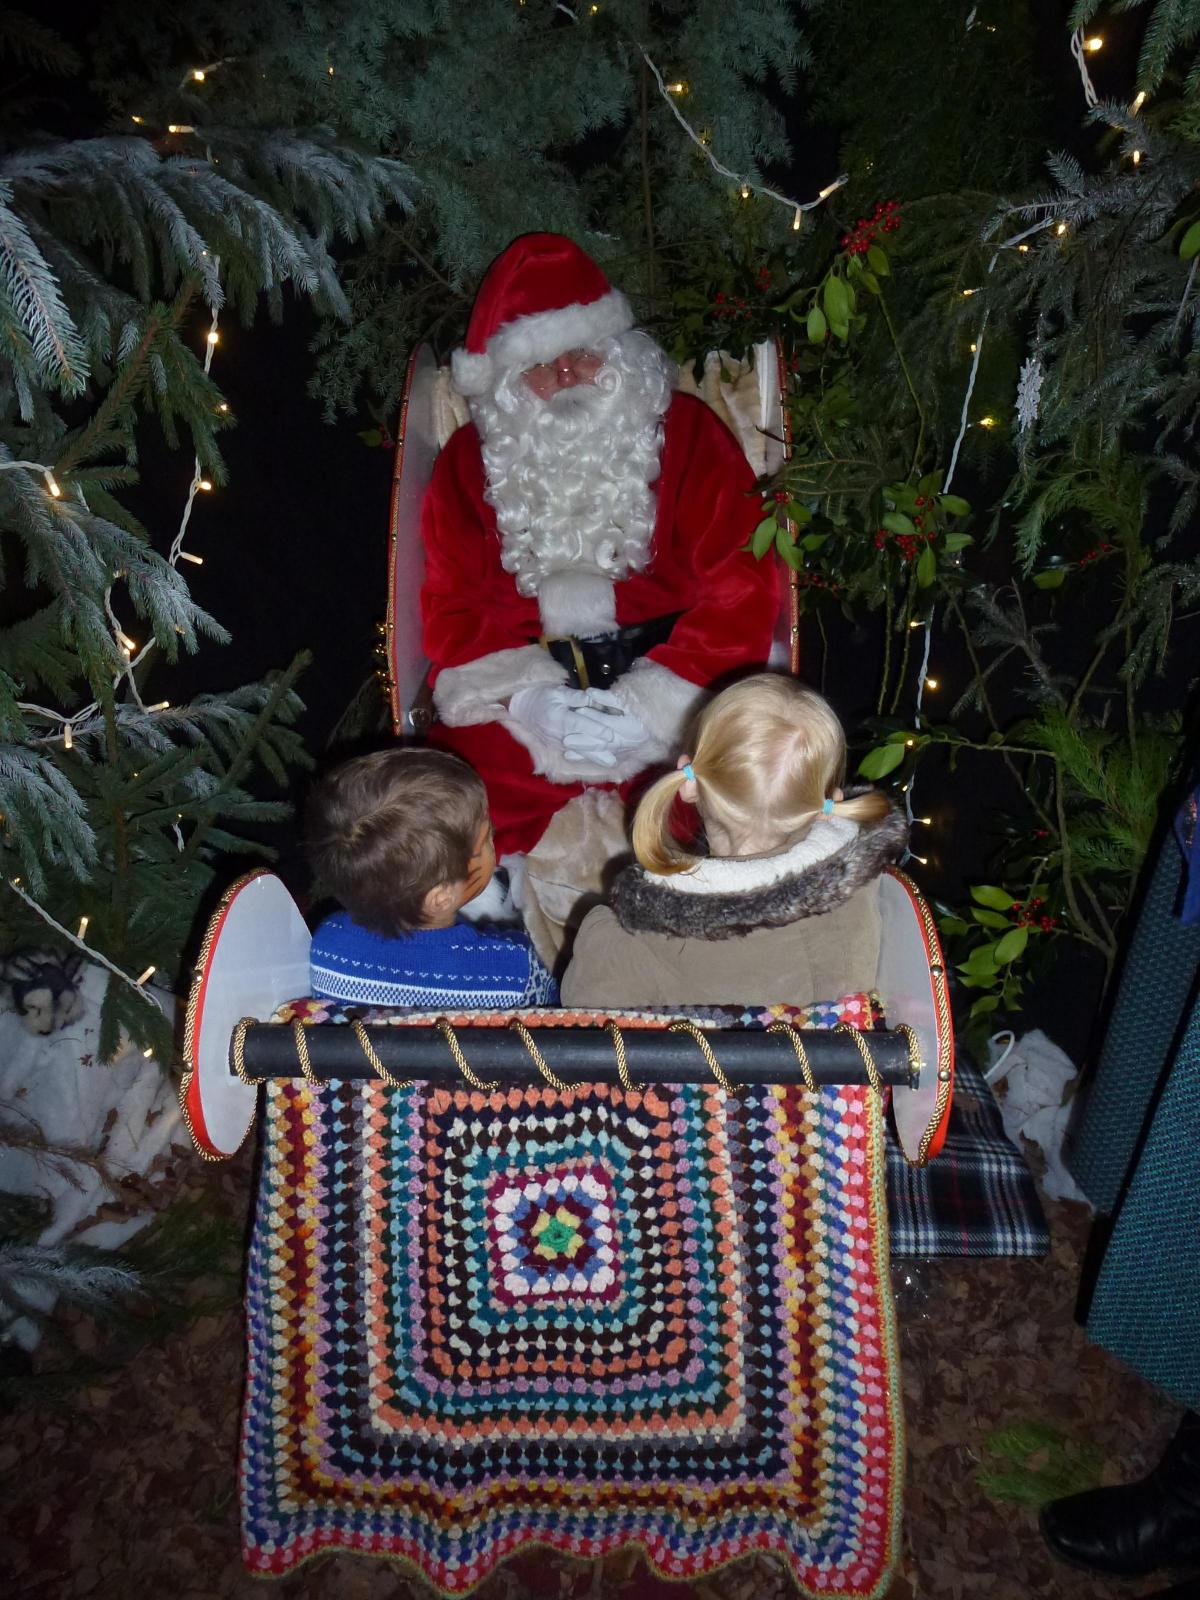 Santa S Grotto Colouring With Is Through The Wardrobe In Narnia At Penshurst Place News